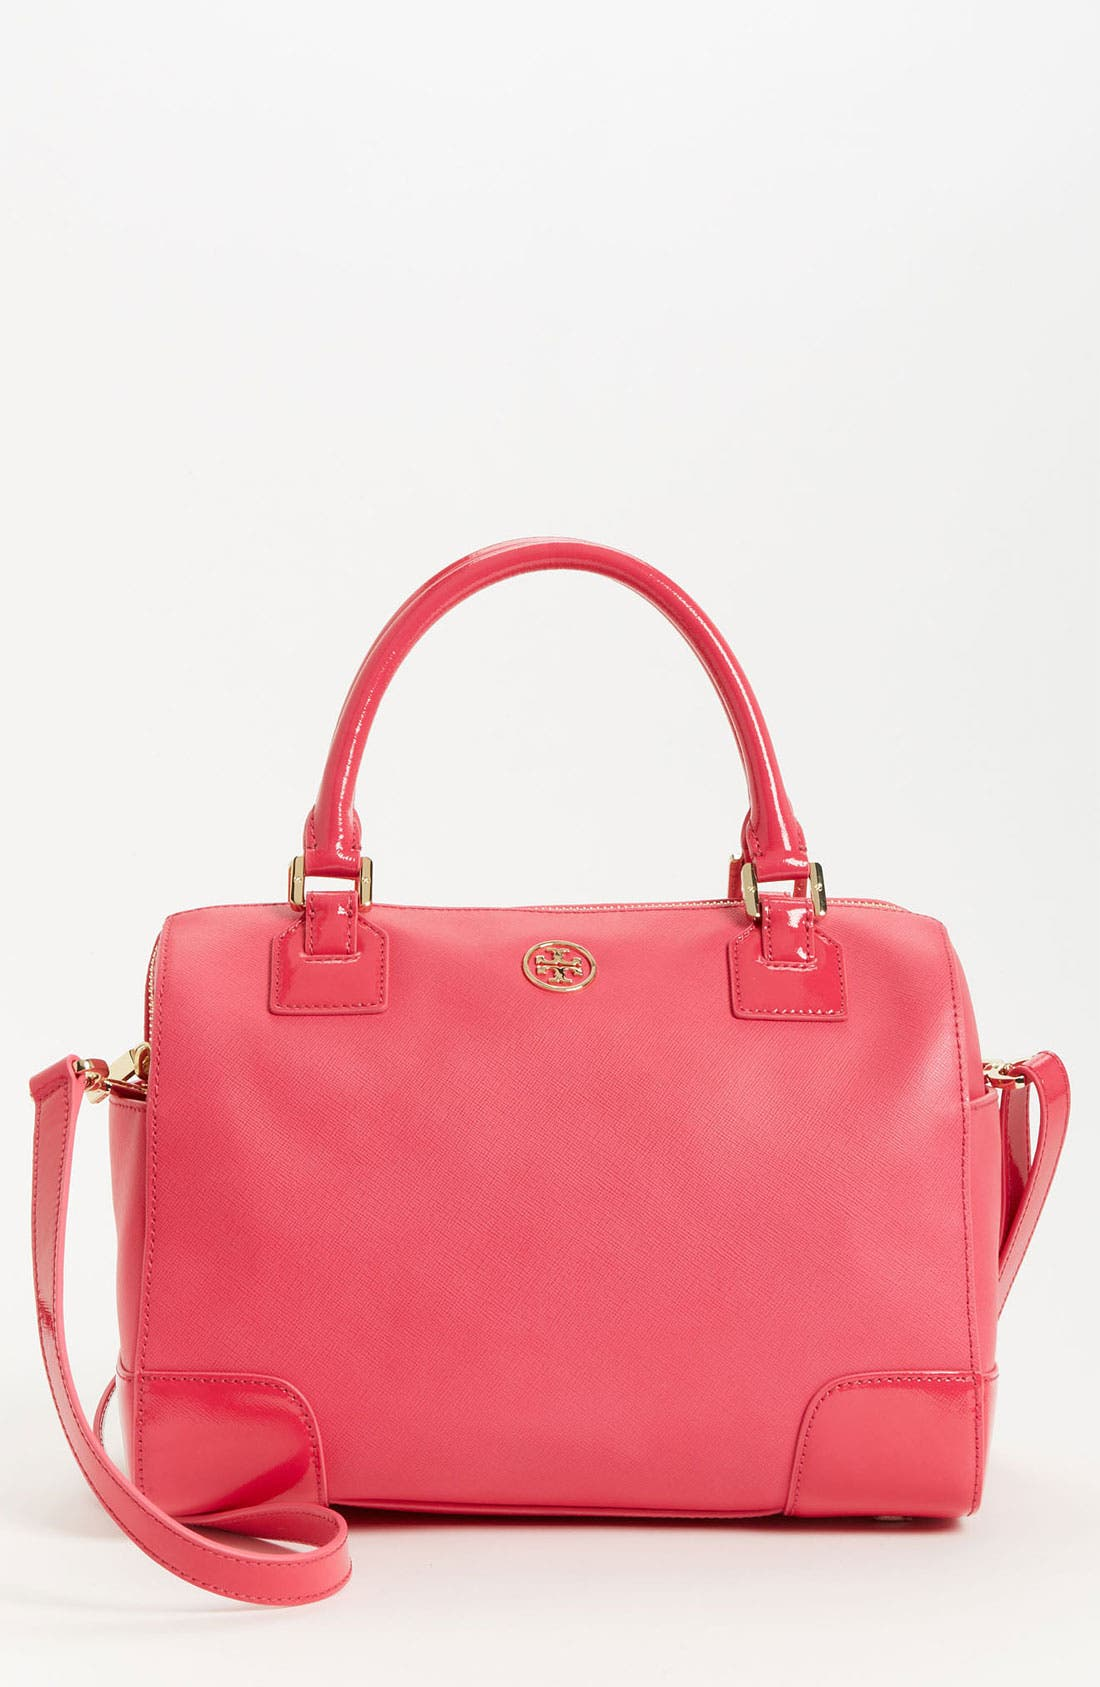 Alternate Image 1 Selected - Tory Burch 'Robinson - Middy' Saffiano Leather Satchel